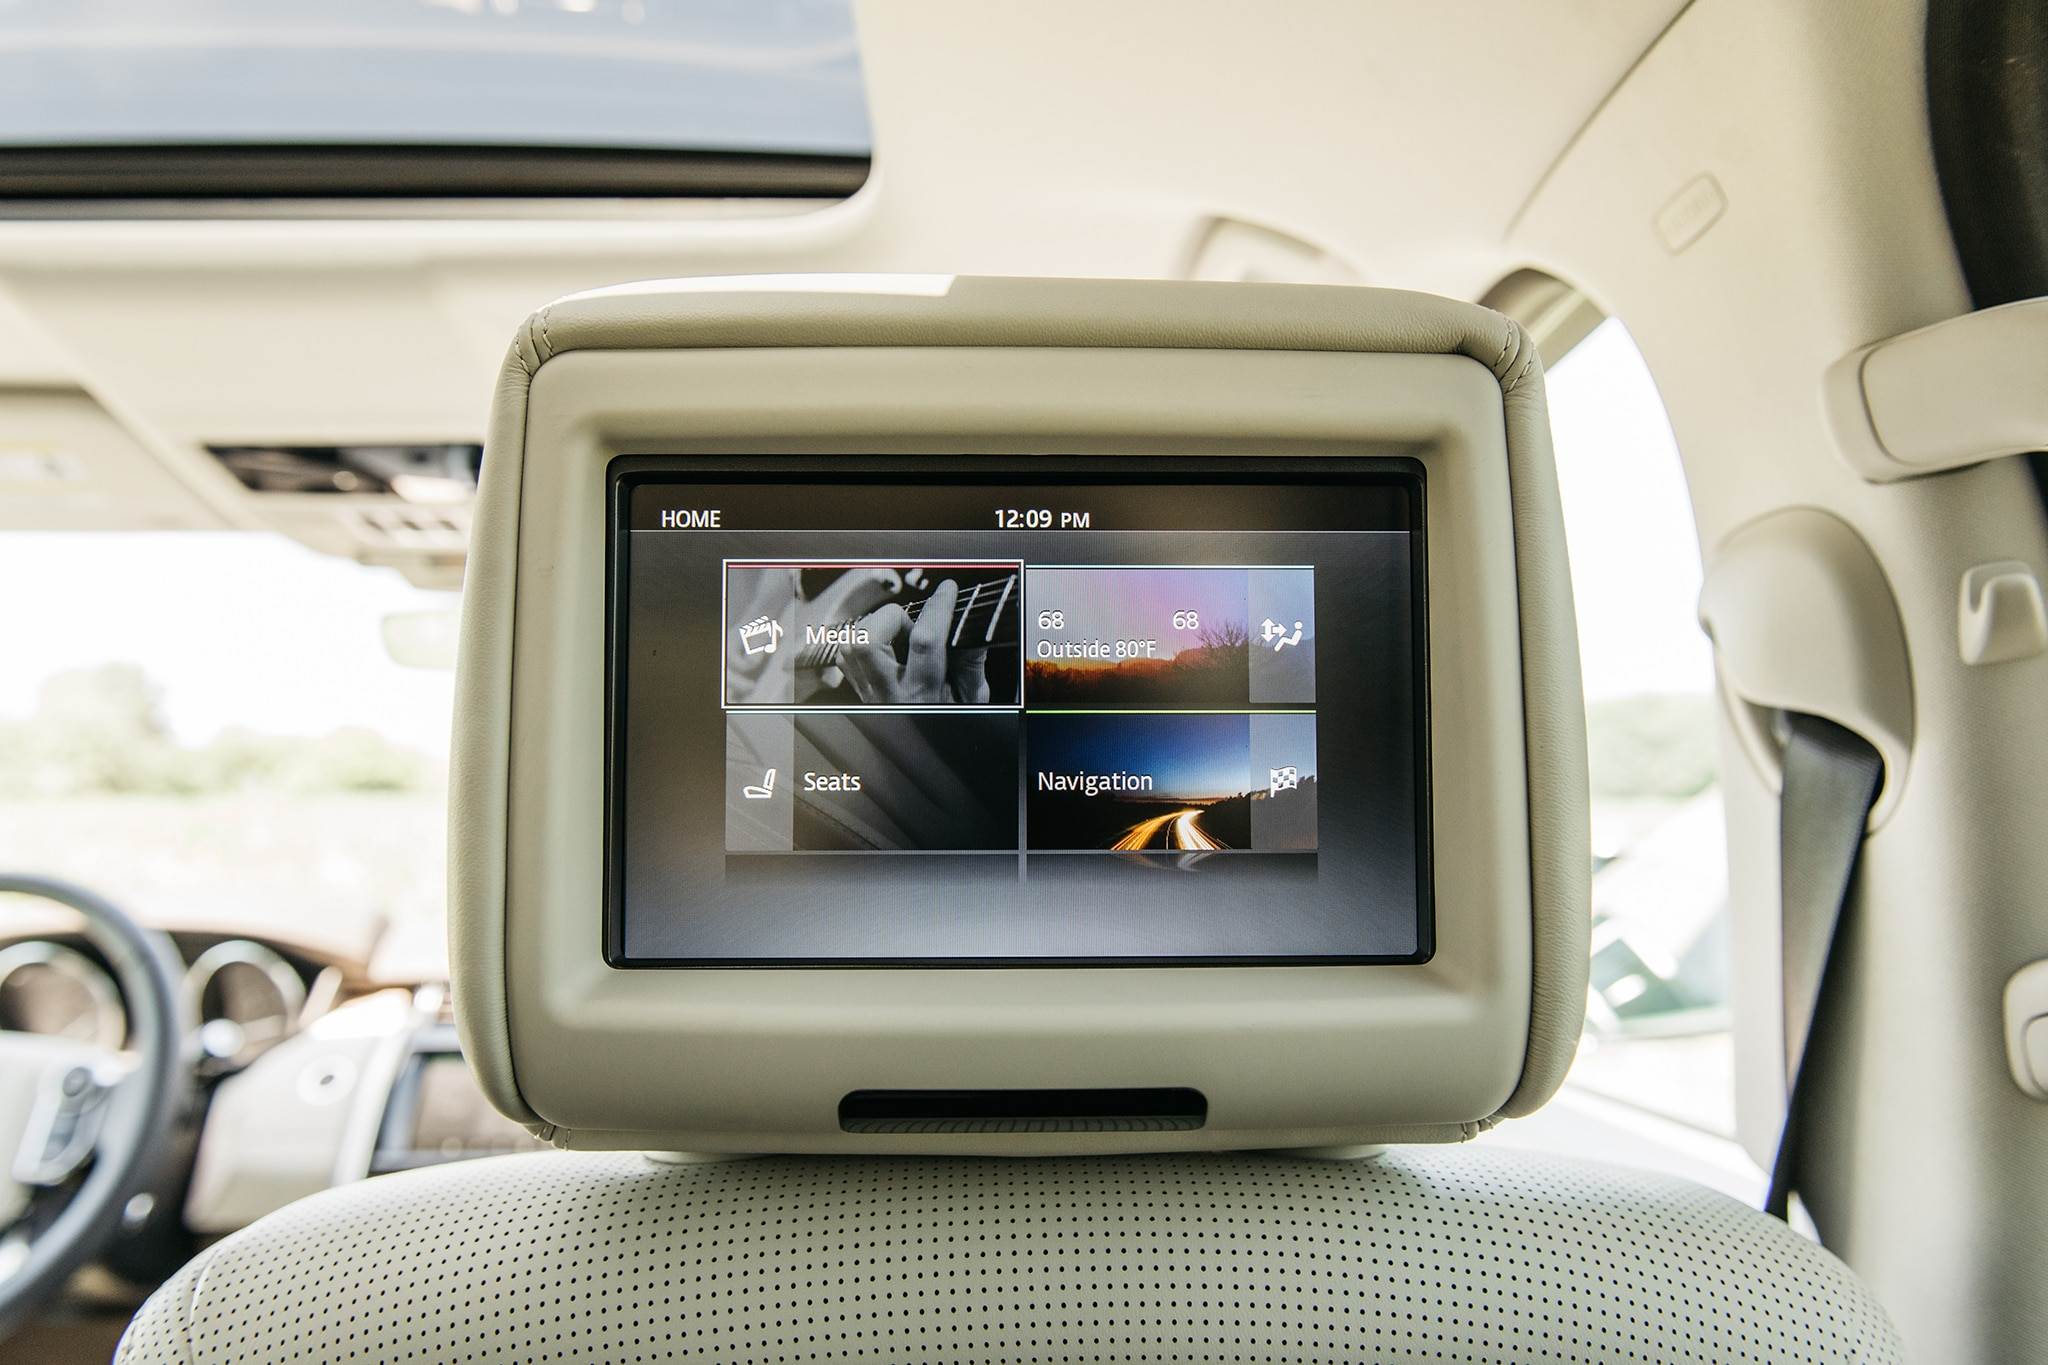 2017 Land Rover Discovery Td6 HSE Rear Entertainment